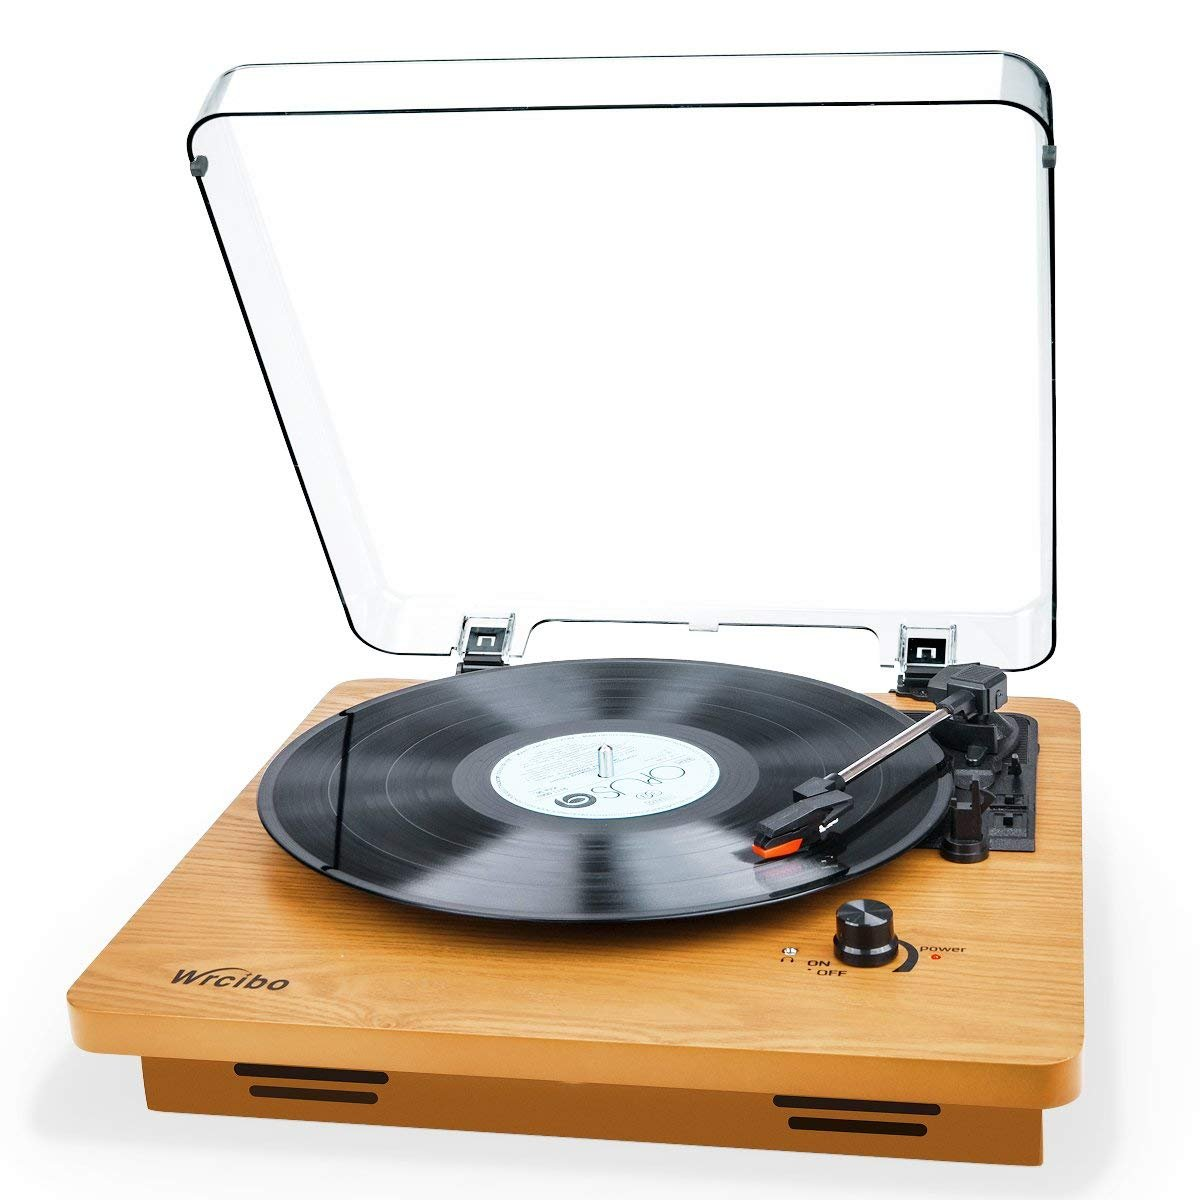 Wrcibo Record Player, Vintage Turntable 3-Speed Belt Drive Vinyl Player LP Record Player with Built-in Stereo Speaker, Aux-in, Headphone Jack, and RCA Output, Natural Wood by Wrcibo